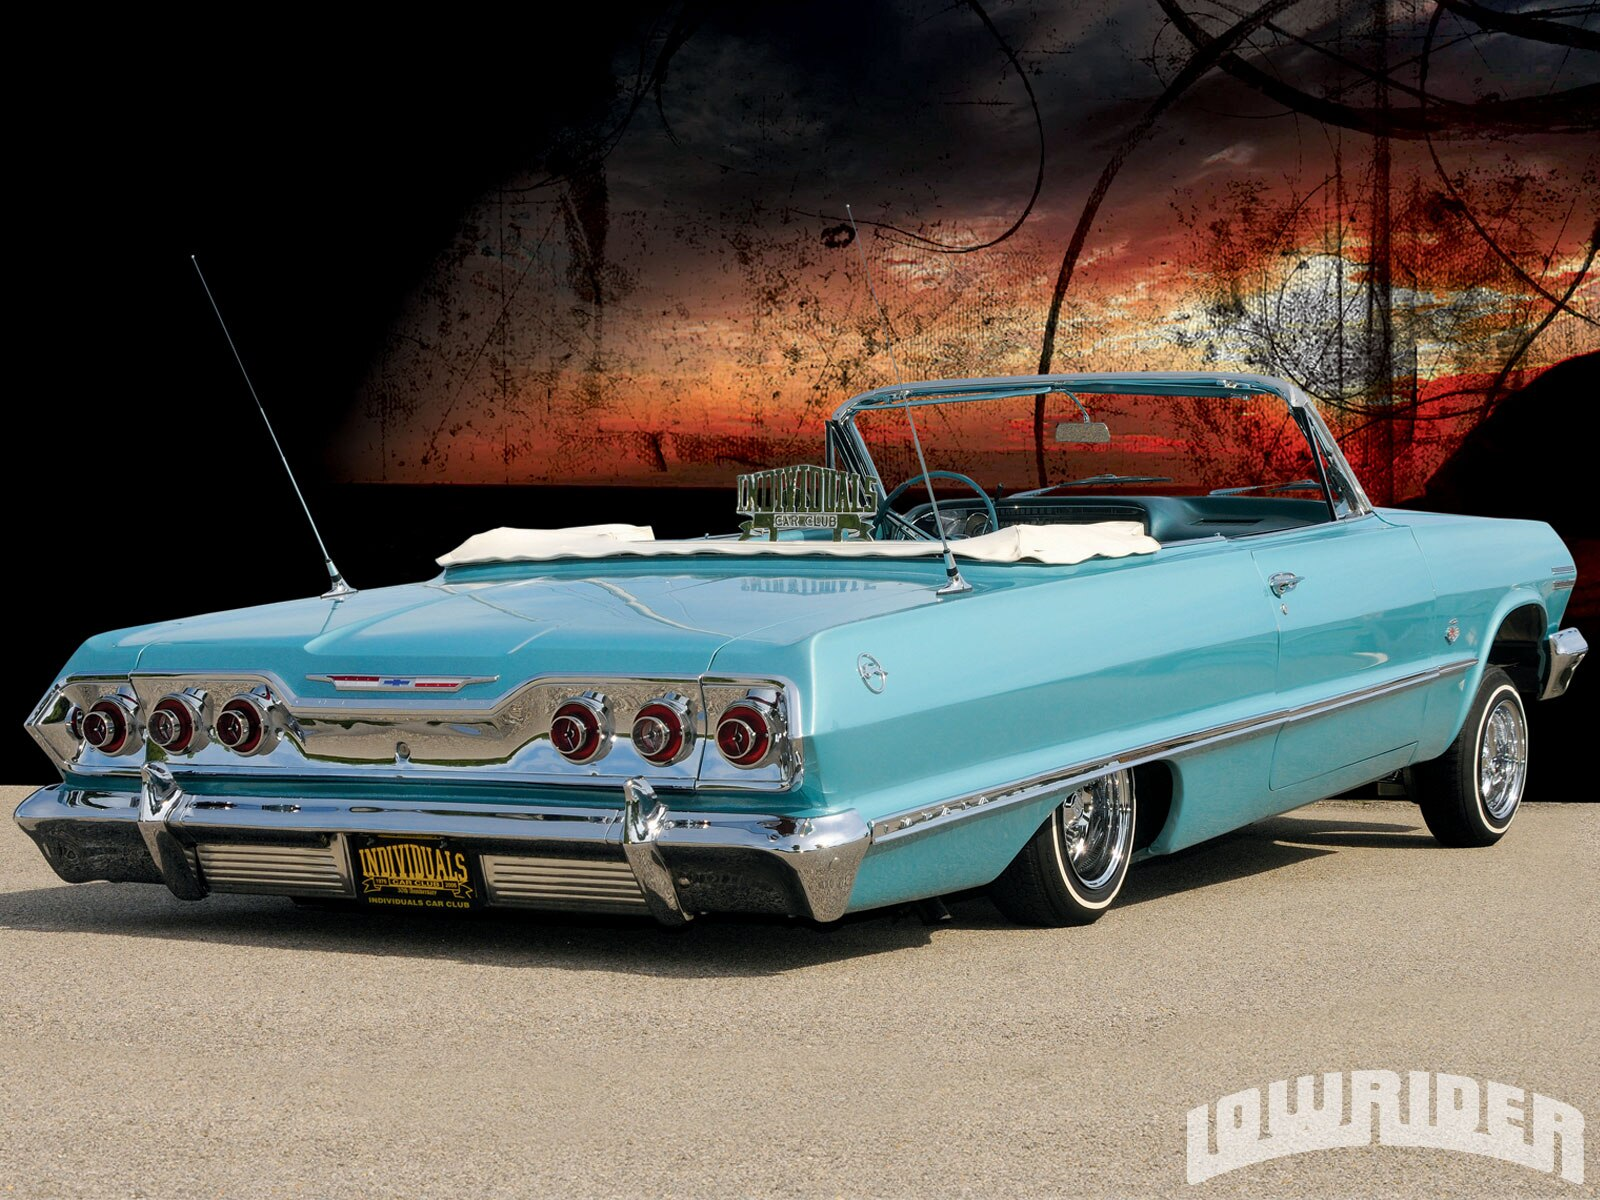 1963 Chevrolet Impala For Sale - Carsforsale.com